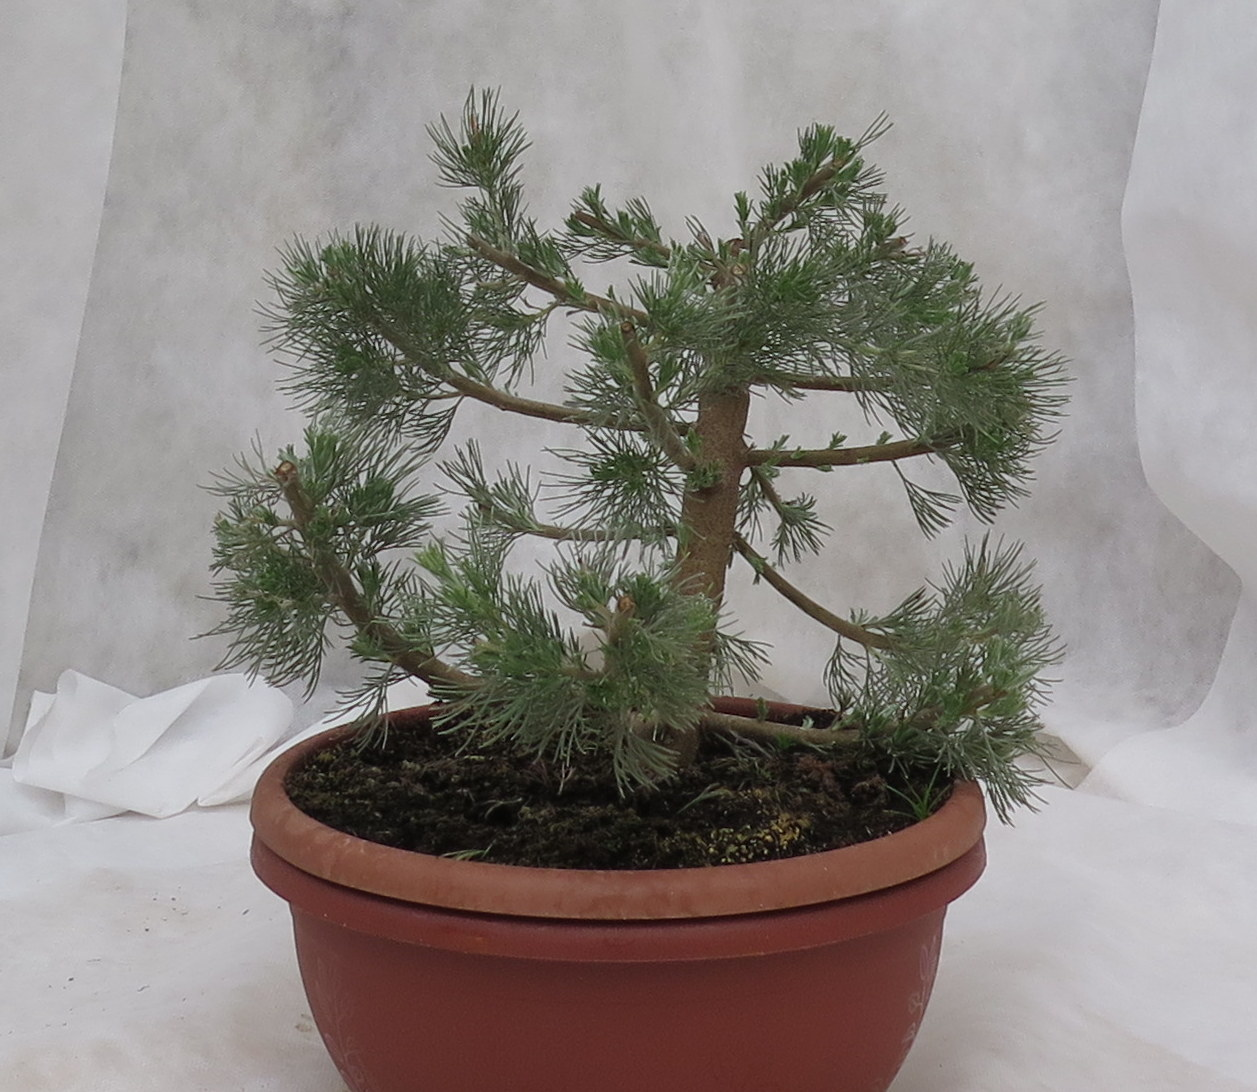 Chris-Tal Bonsai shaped